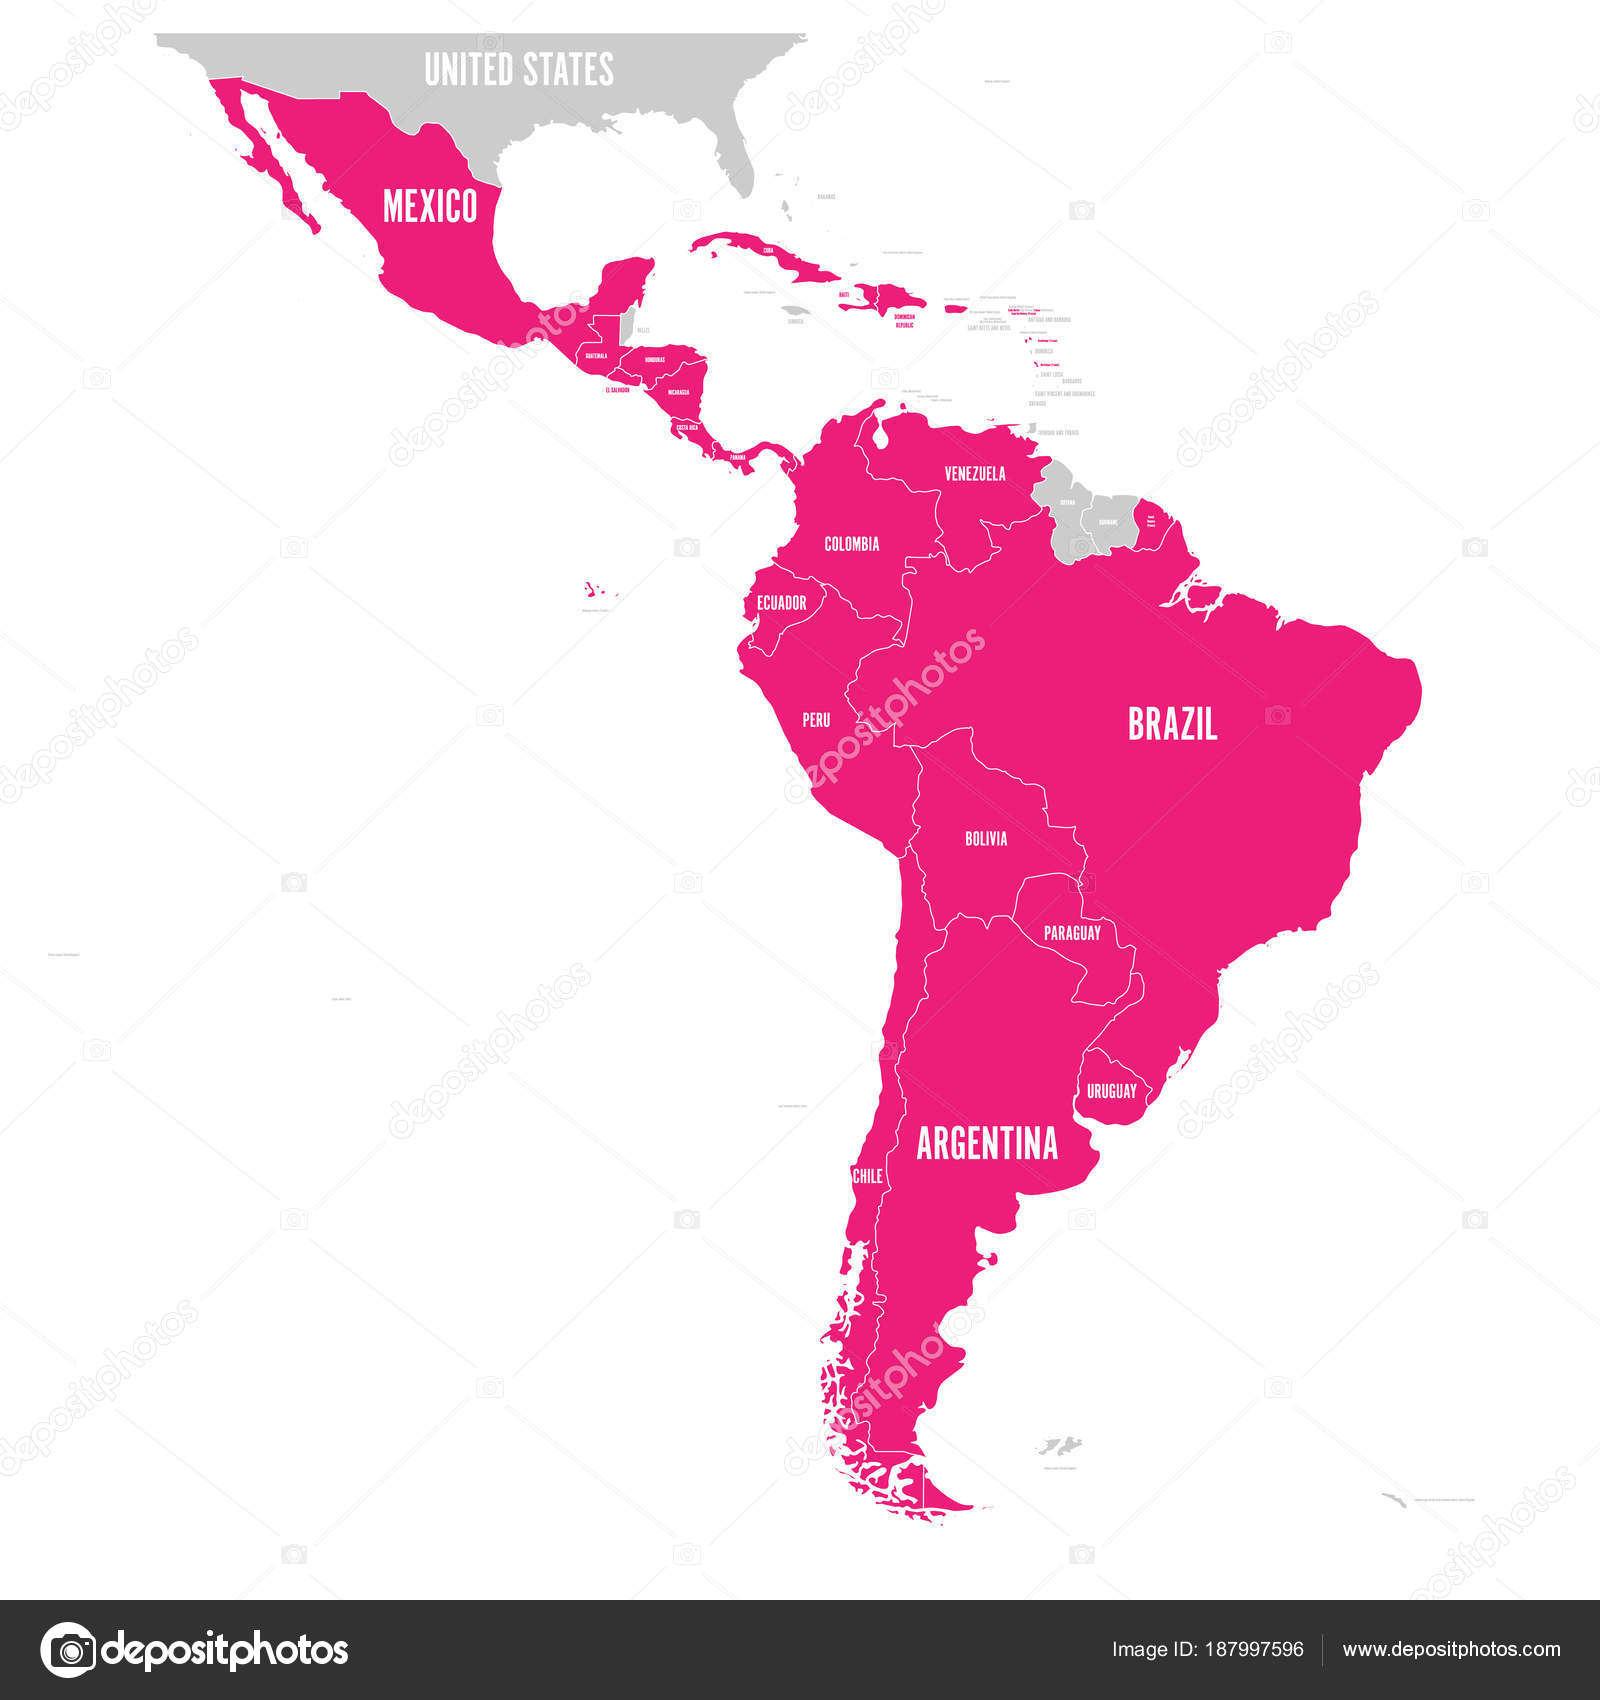 Political map of Latin America. Latin american states pink ... on asia pacific map, western europe map, central and southwest asia map, central america vegetation map, middle america map, andes mountains map, panama canal map, central and east africa map, north america map, caribbean map, central and south american countries, belize map, south central us map, west indies and central america map, amazon river map, central plains south america, llanos map, latin america map, central and southern europe map, orinoco river map,